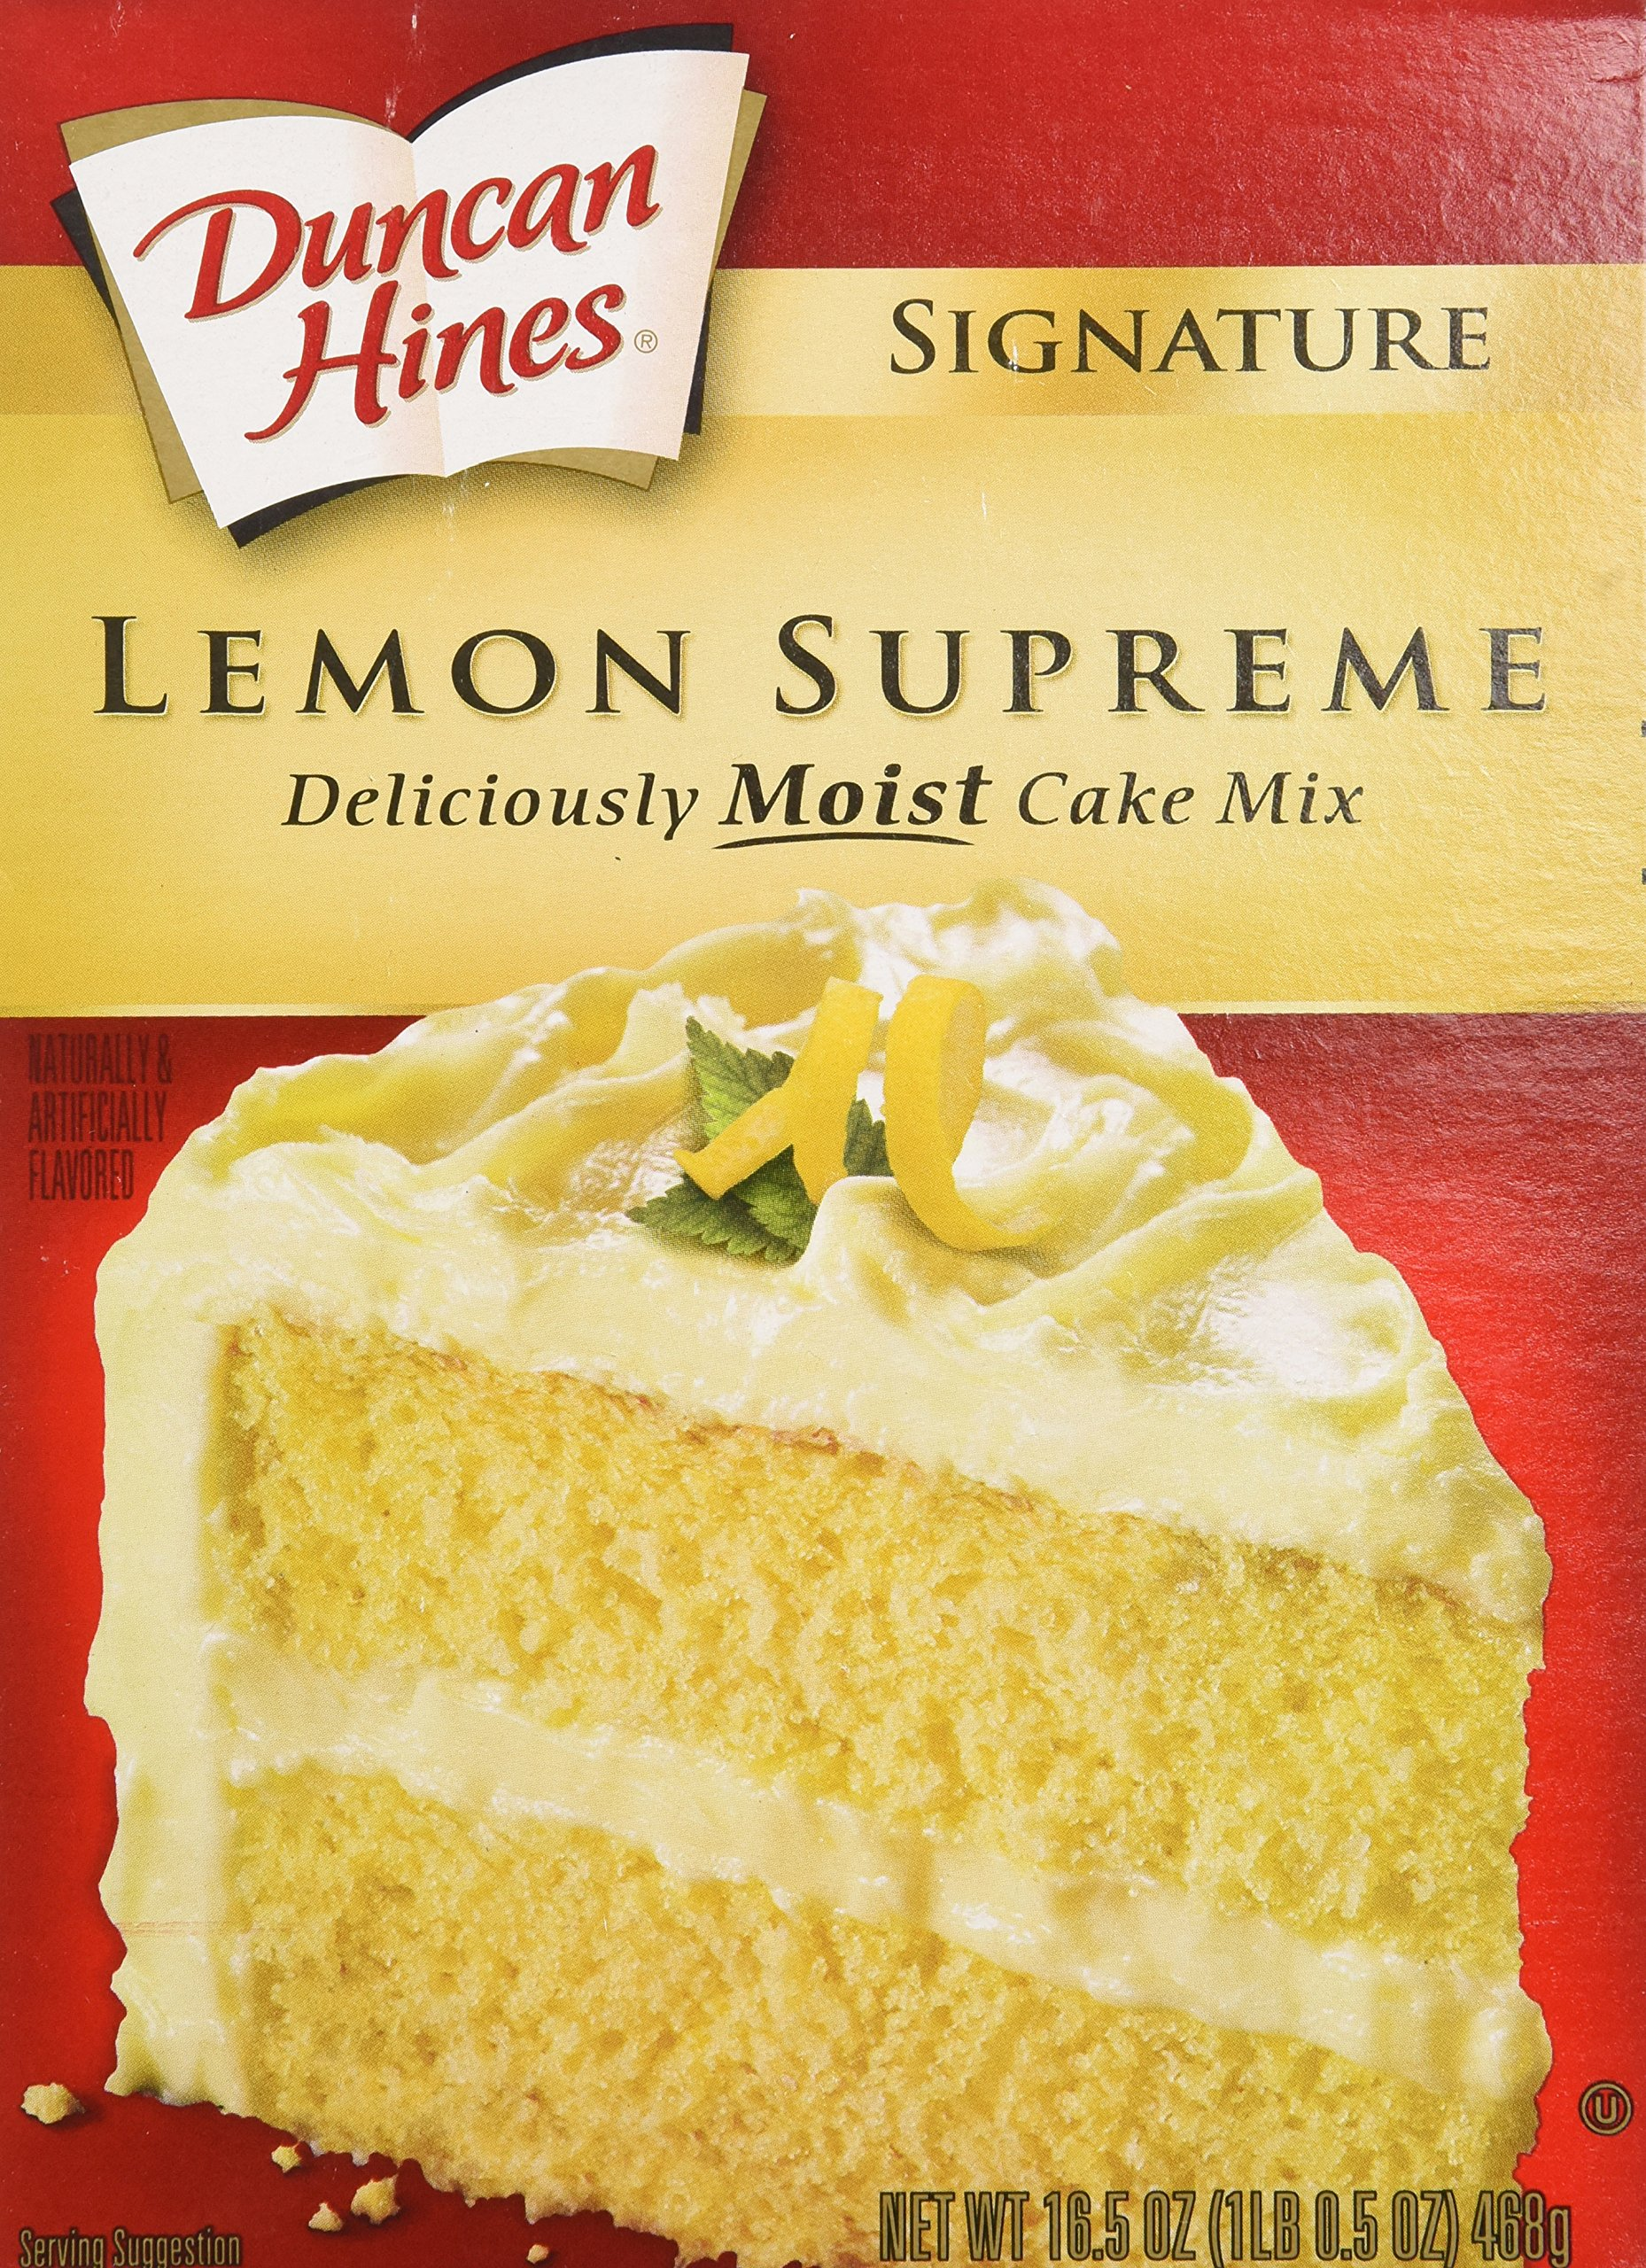 Duncan Hines Cake Mix, Moist Deluxe Lemon Supreme, 16.5 oz (Pack of 12)